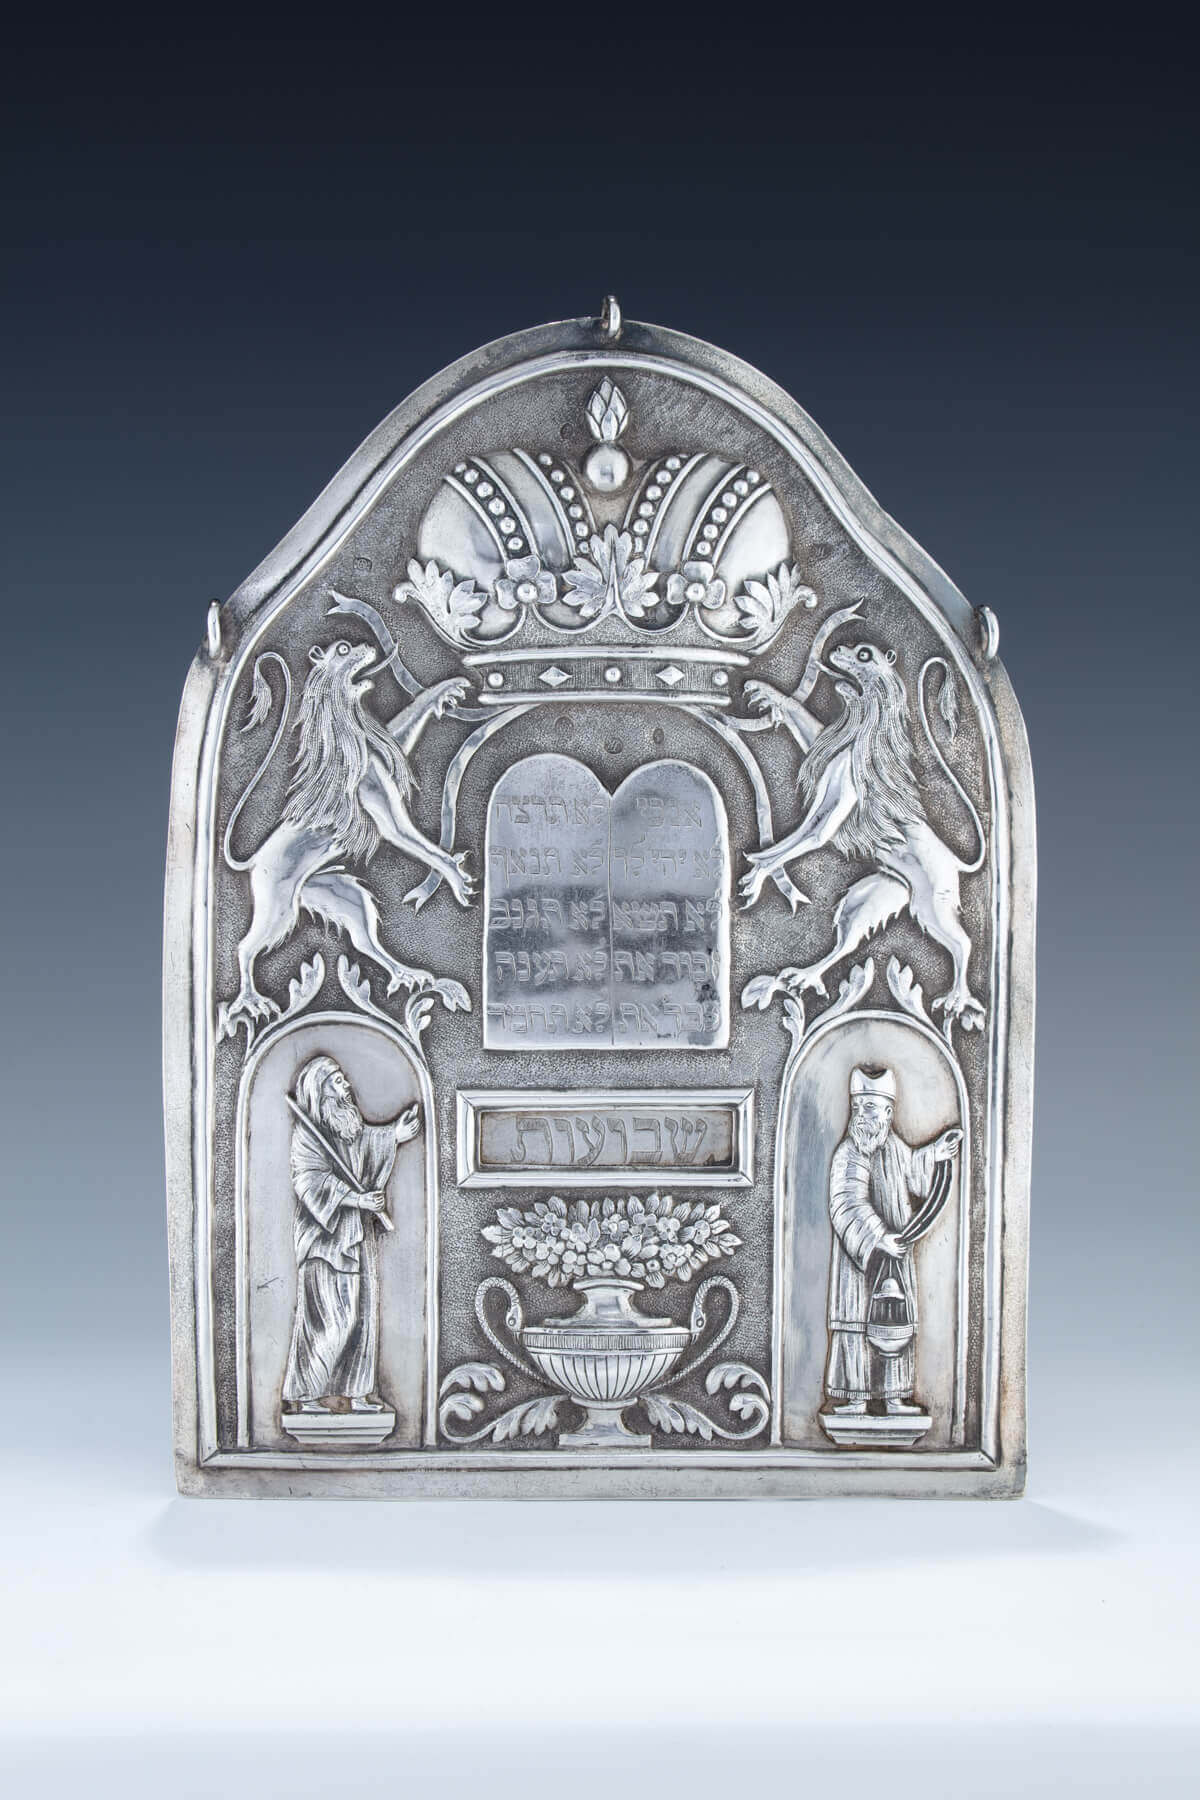 142. A RARE AND IMPORTANT SILVER TORAH SHIELD